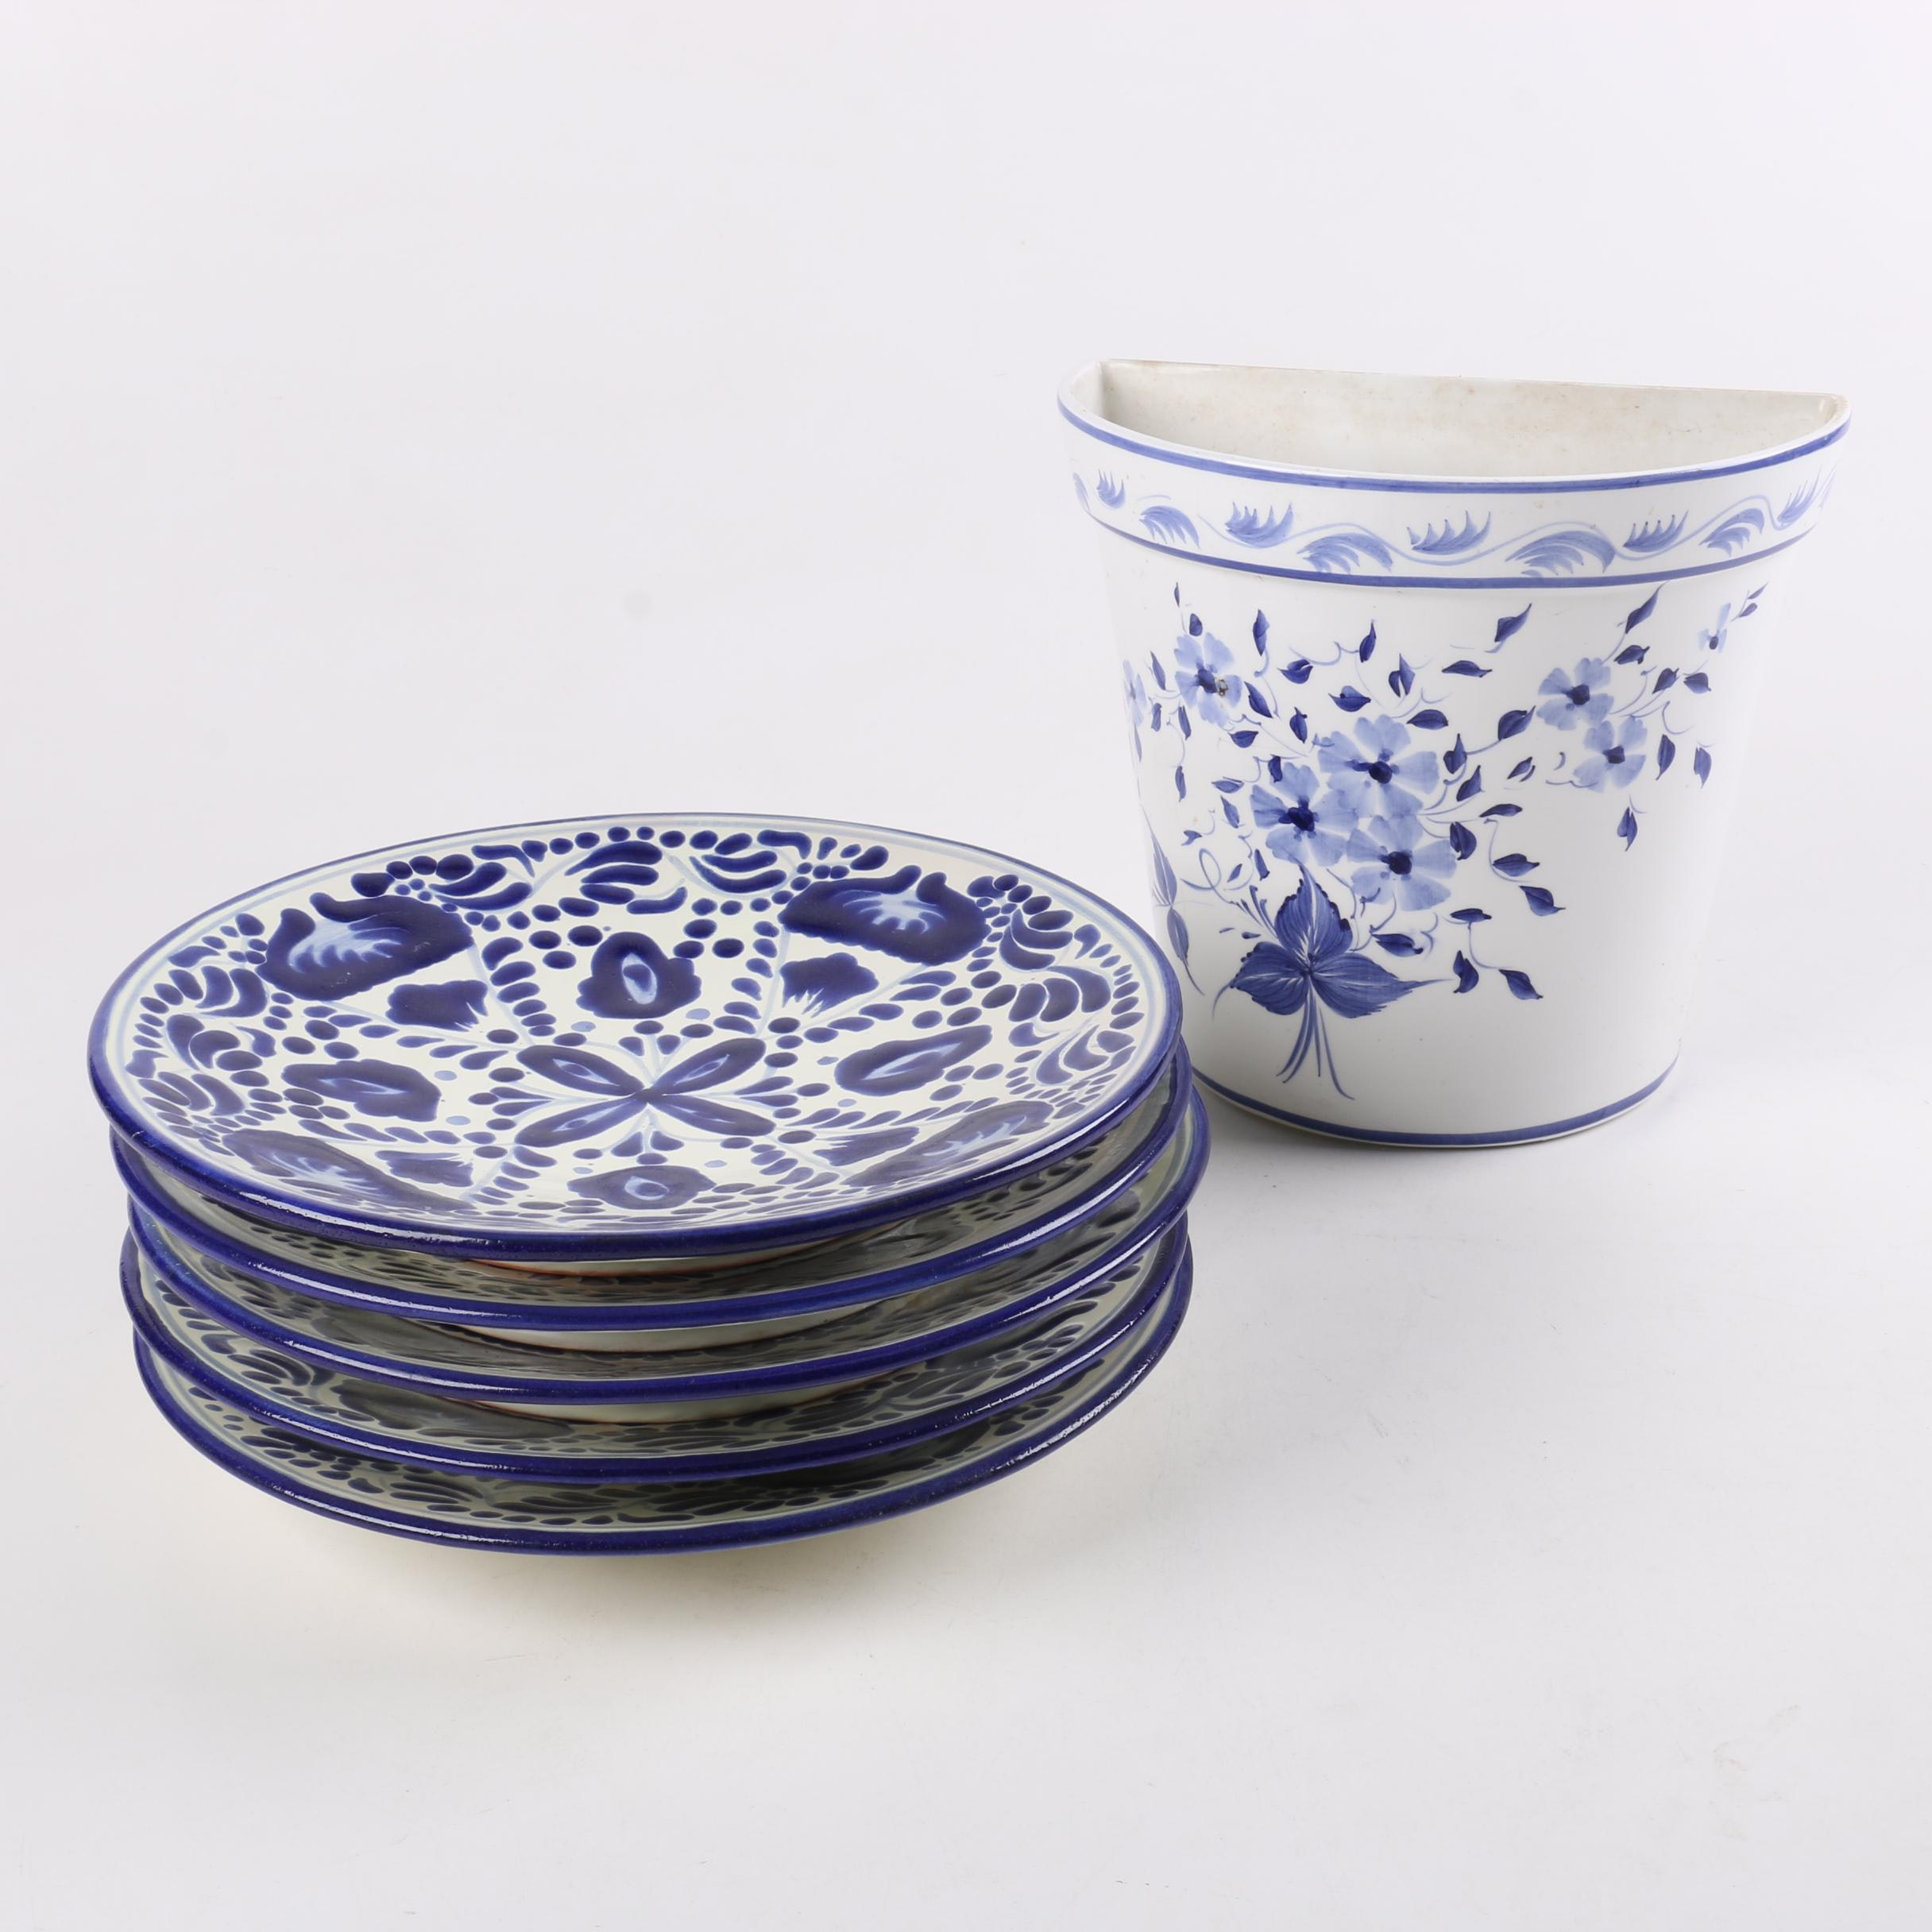 Blue and White Mexican and Portuguese Tableware and Decor ... & Blue and White Mexican and Portuguese Tableware and Decor : EBTH